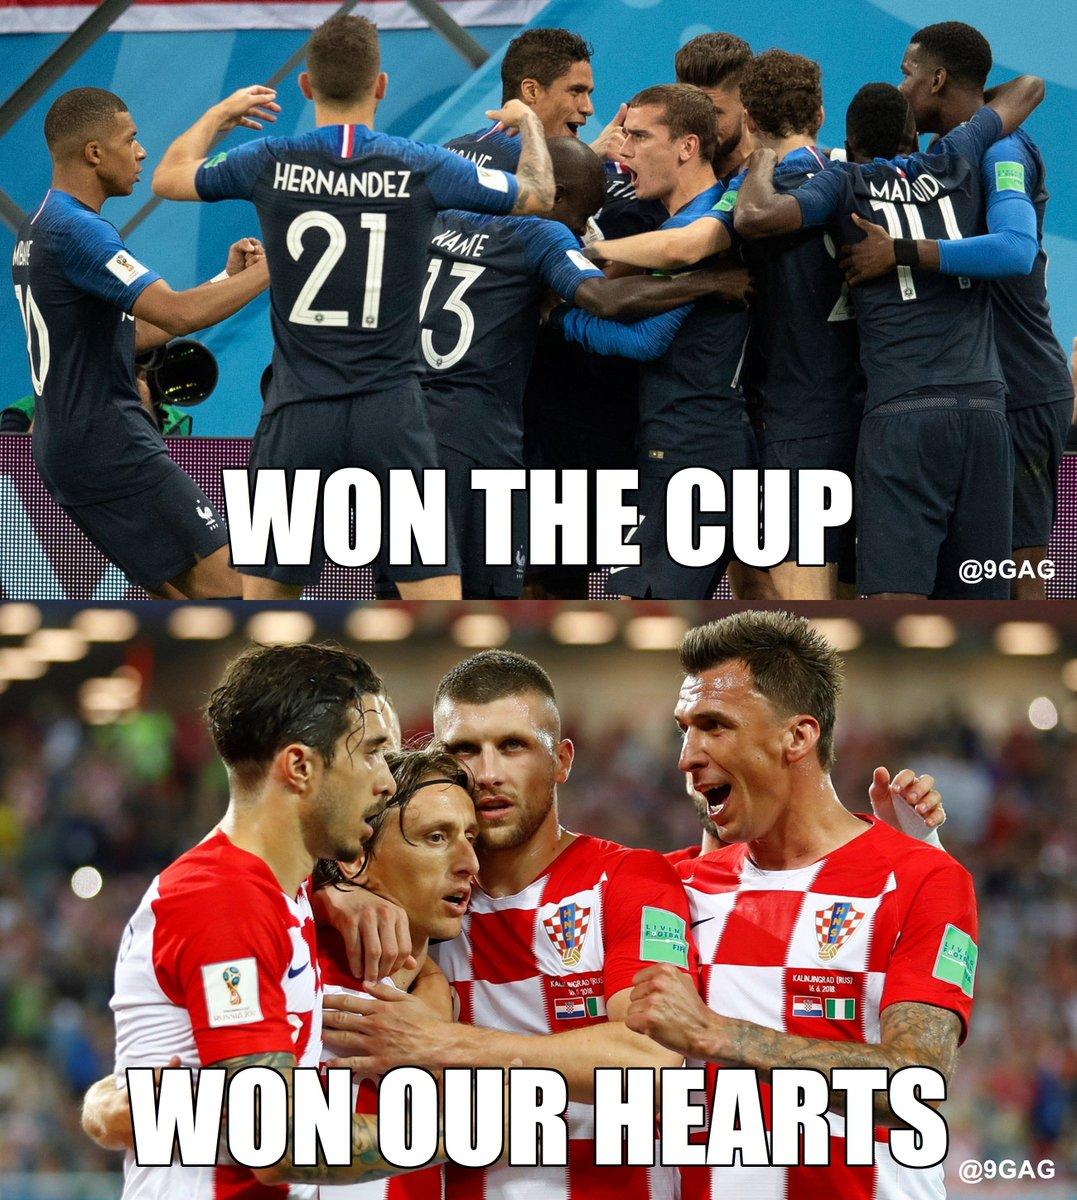 Congrats #france and #croatia. You have both done a great job at #worldcup! https://t.co/fCiR6ZXfgi